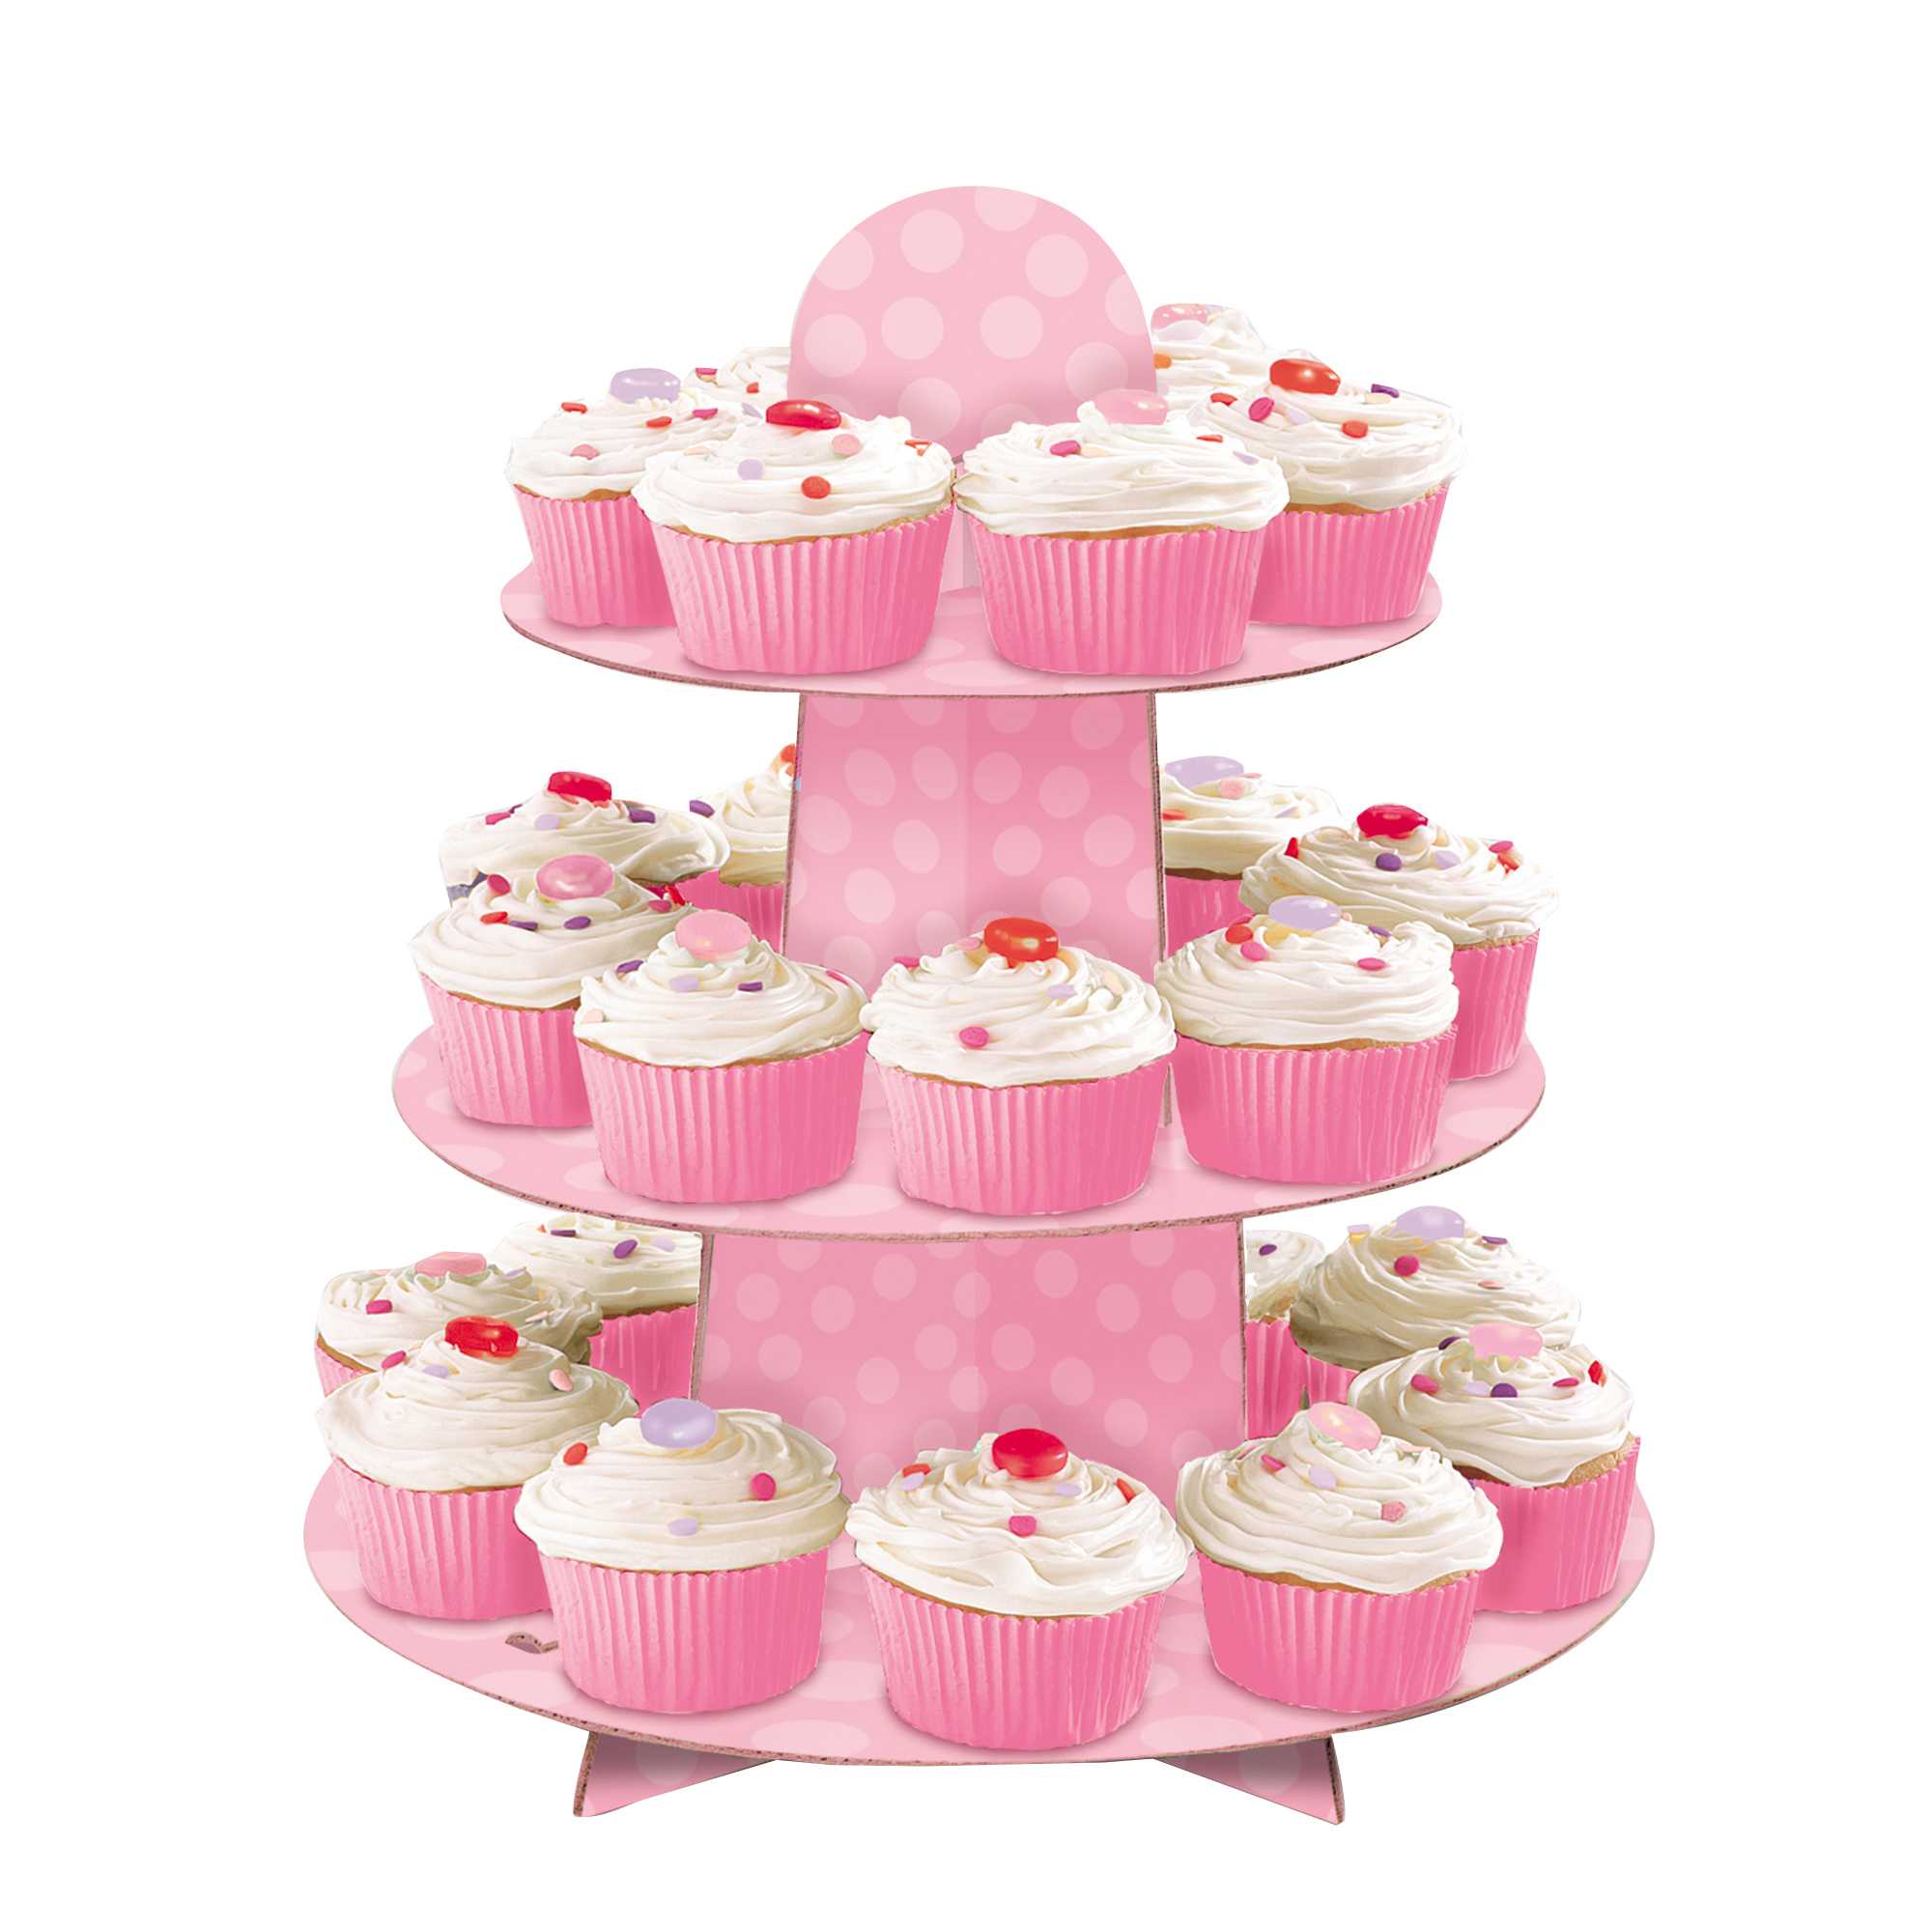 Pink Cardboard Cupcake Stand, 1.1ft x 11.75in